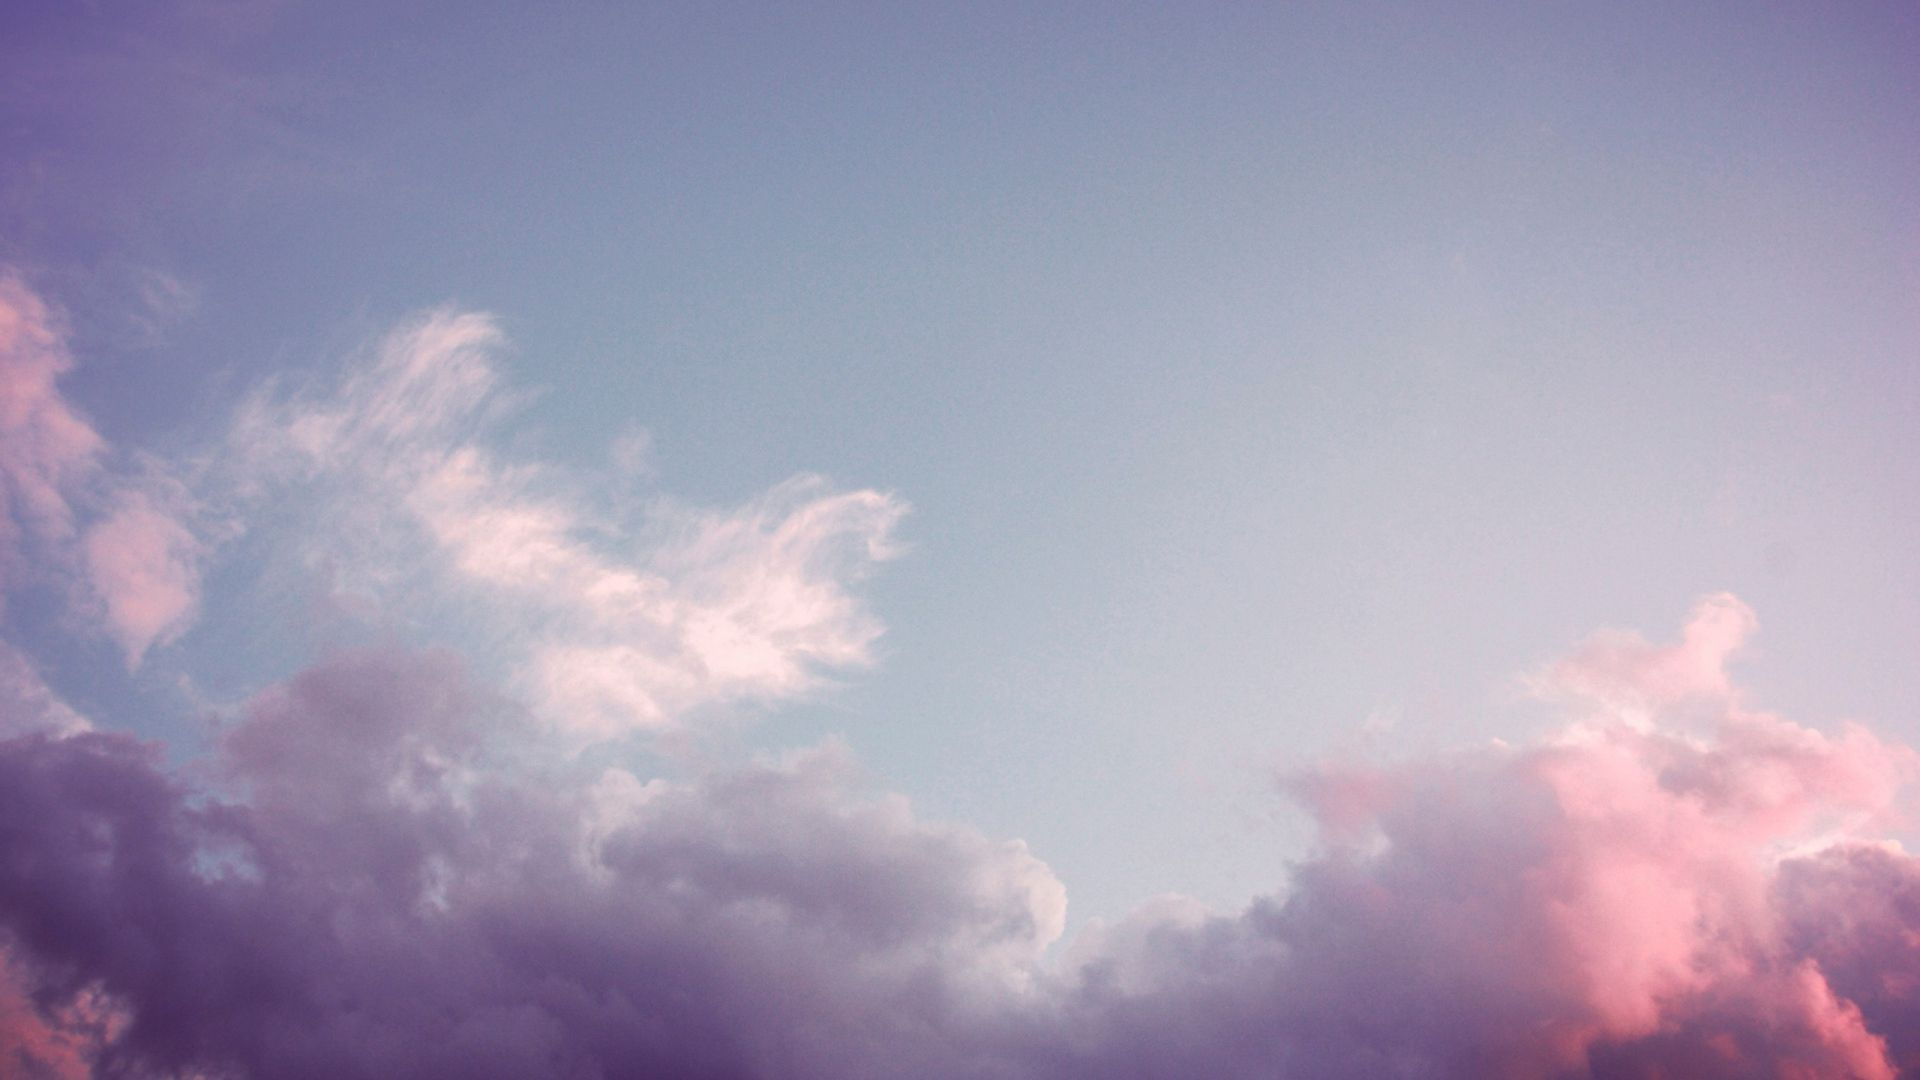 Download Wallpaper 1920x1080 Sky Clouds Pink Full Hd 1080p Hd Background Aesthetic Desktop Wallpaper Desktop Wallpaper Art Laptop Wallpaper